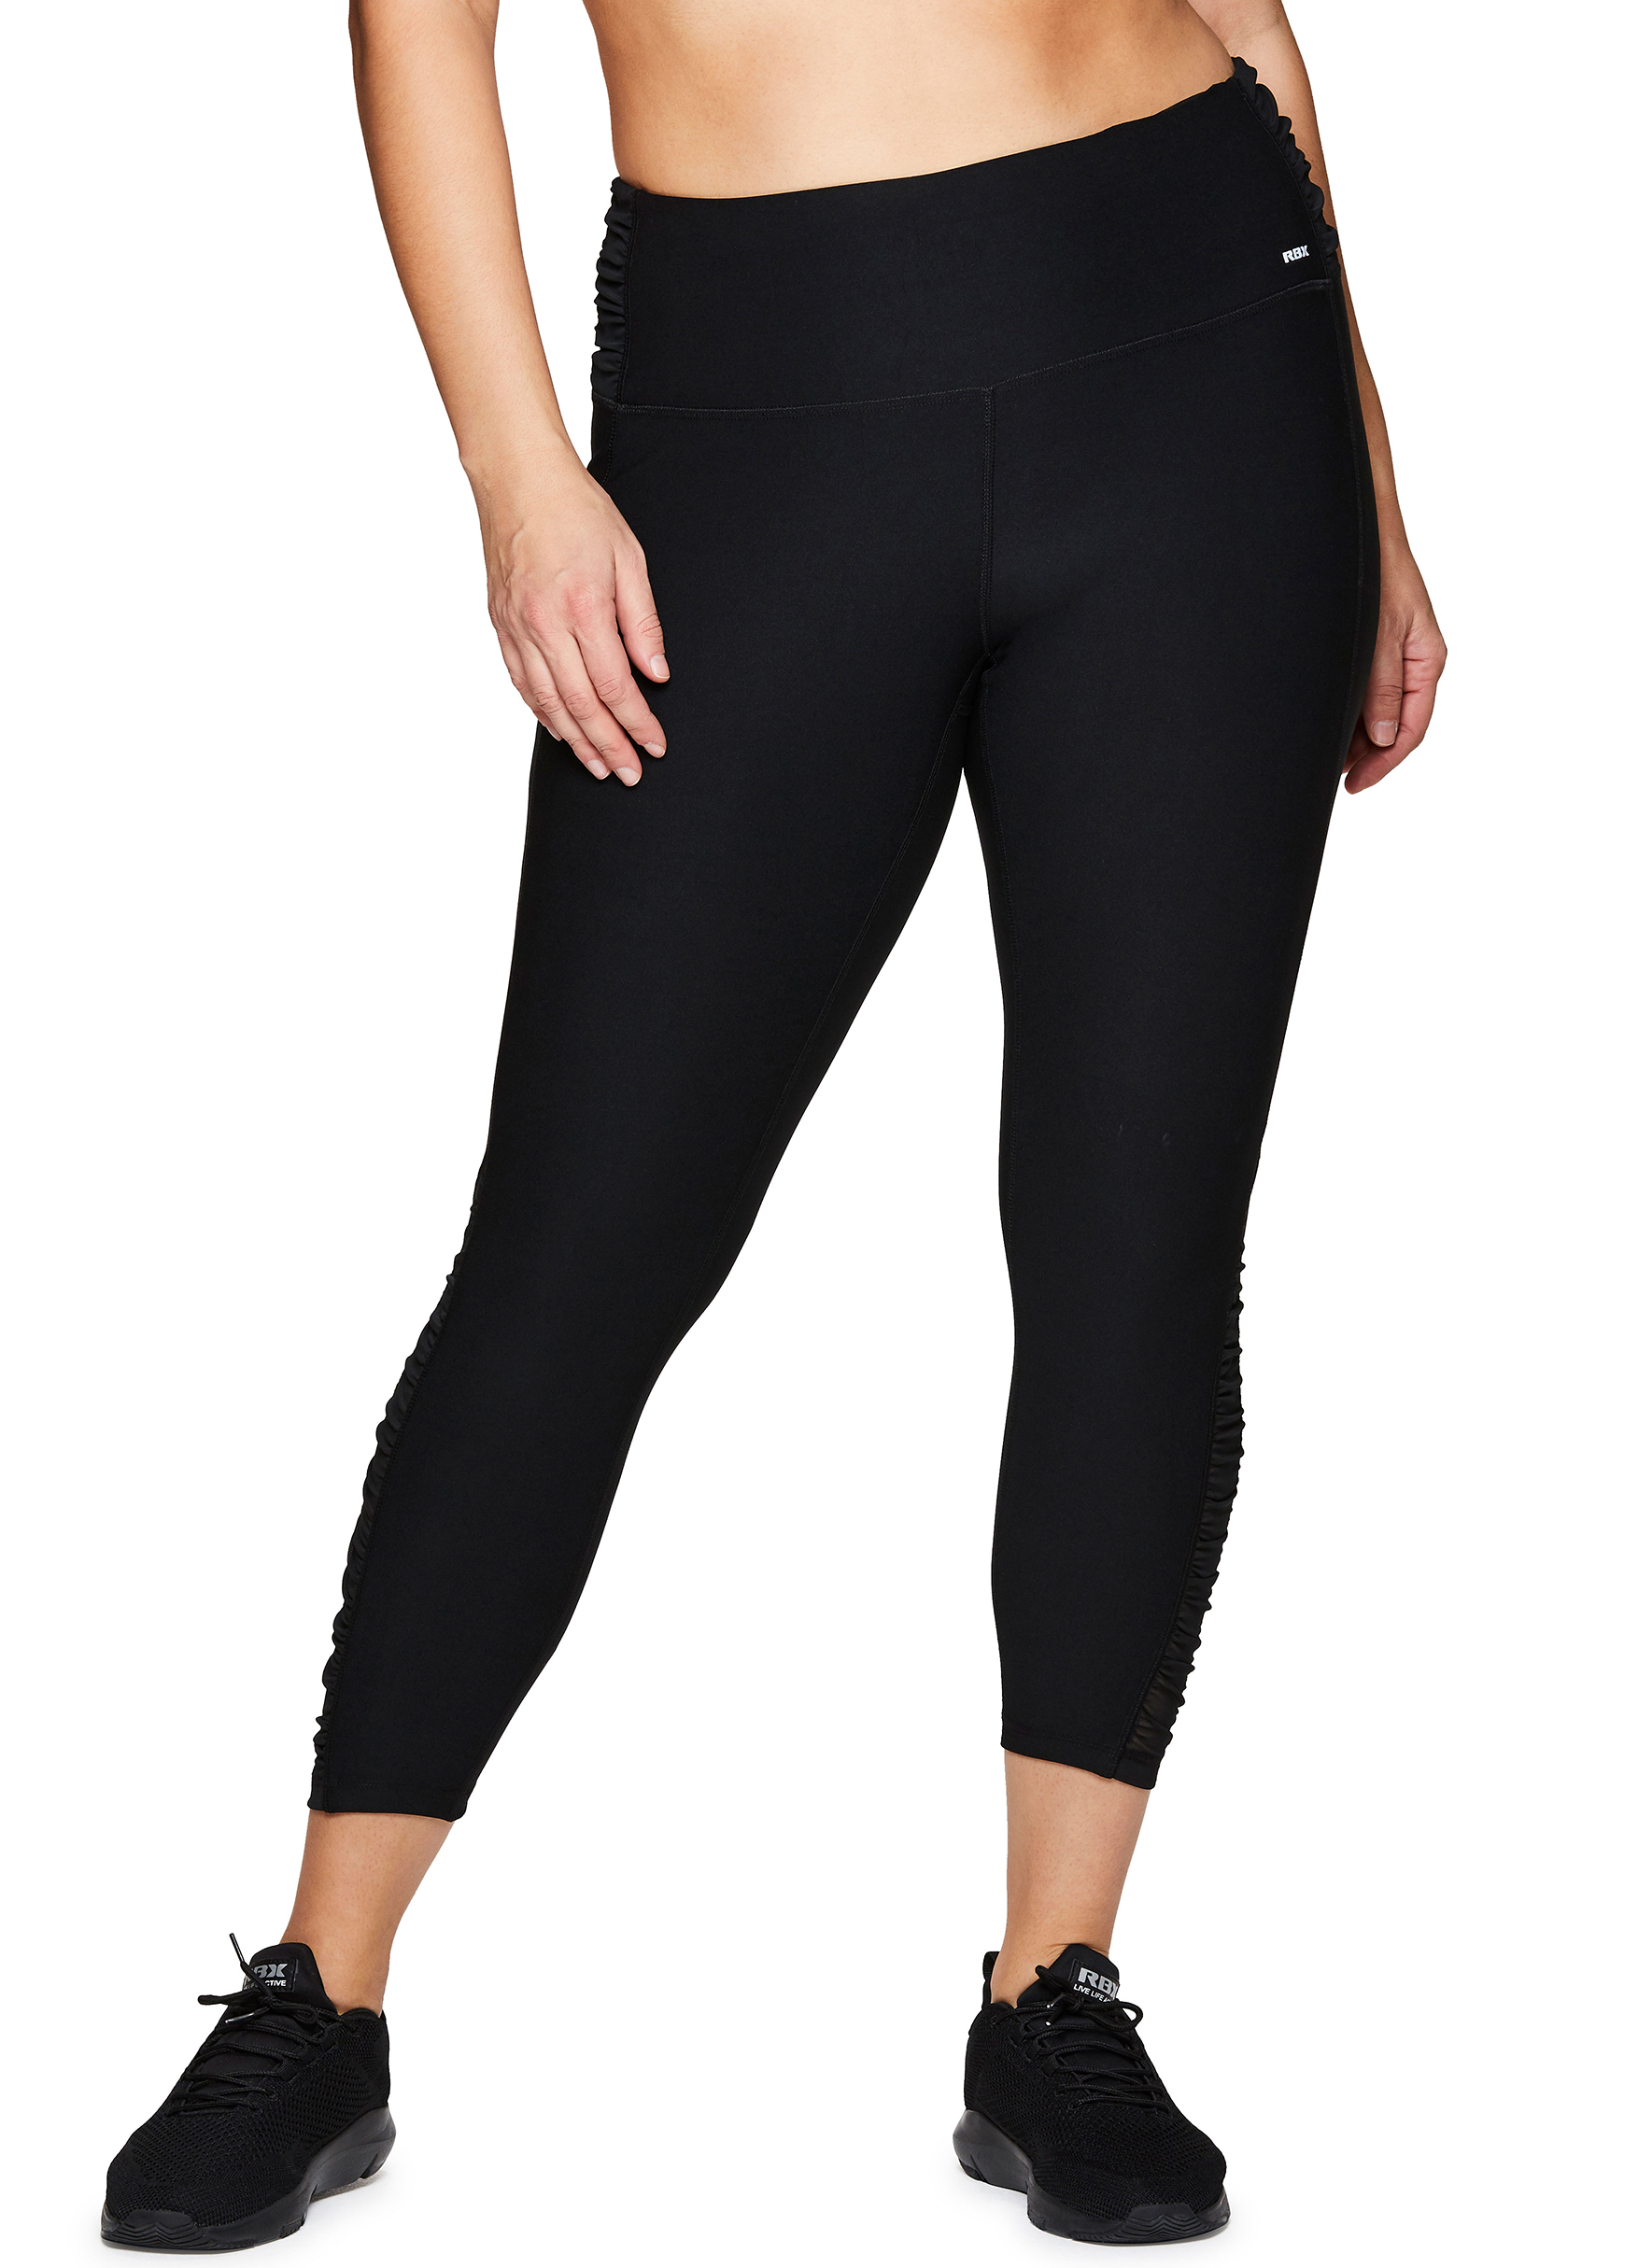 Helpful Rbx Active High Rise Capri Leggings S Leggings